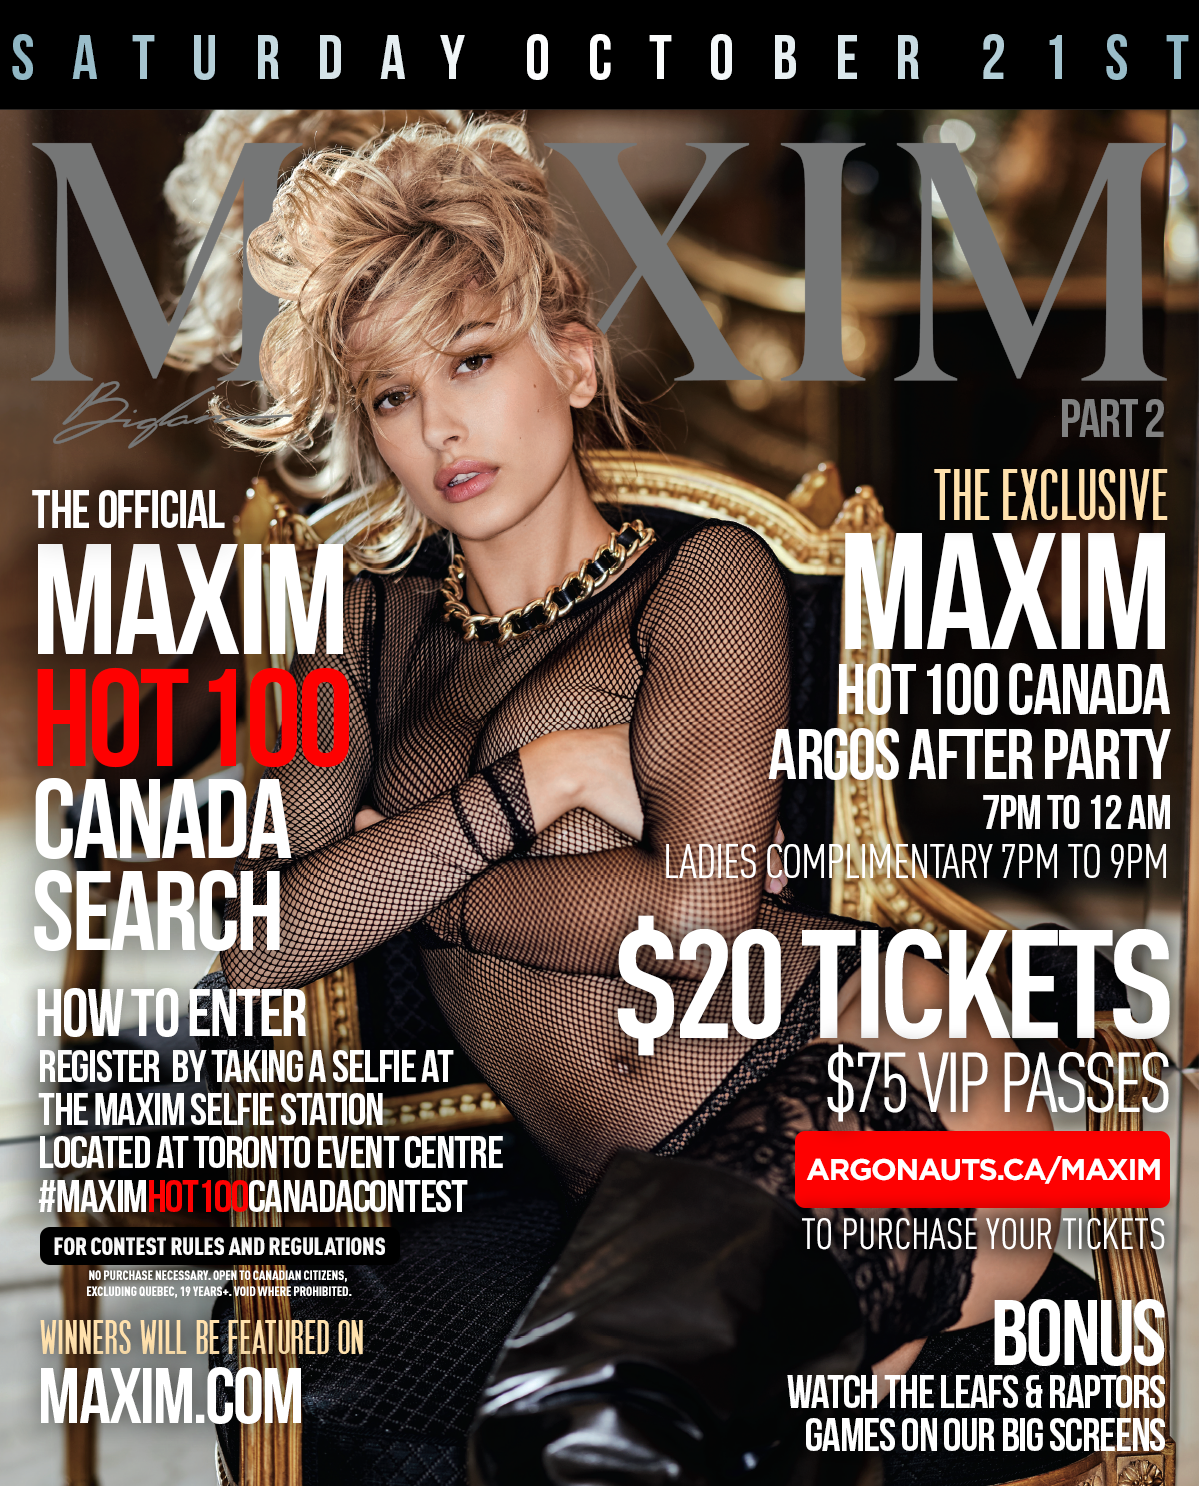 Maxim Hot 100 Canada Search & After Party (Sat  Oct 21, 2017